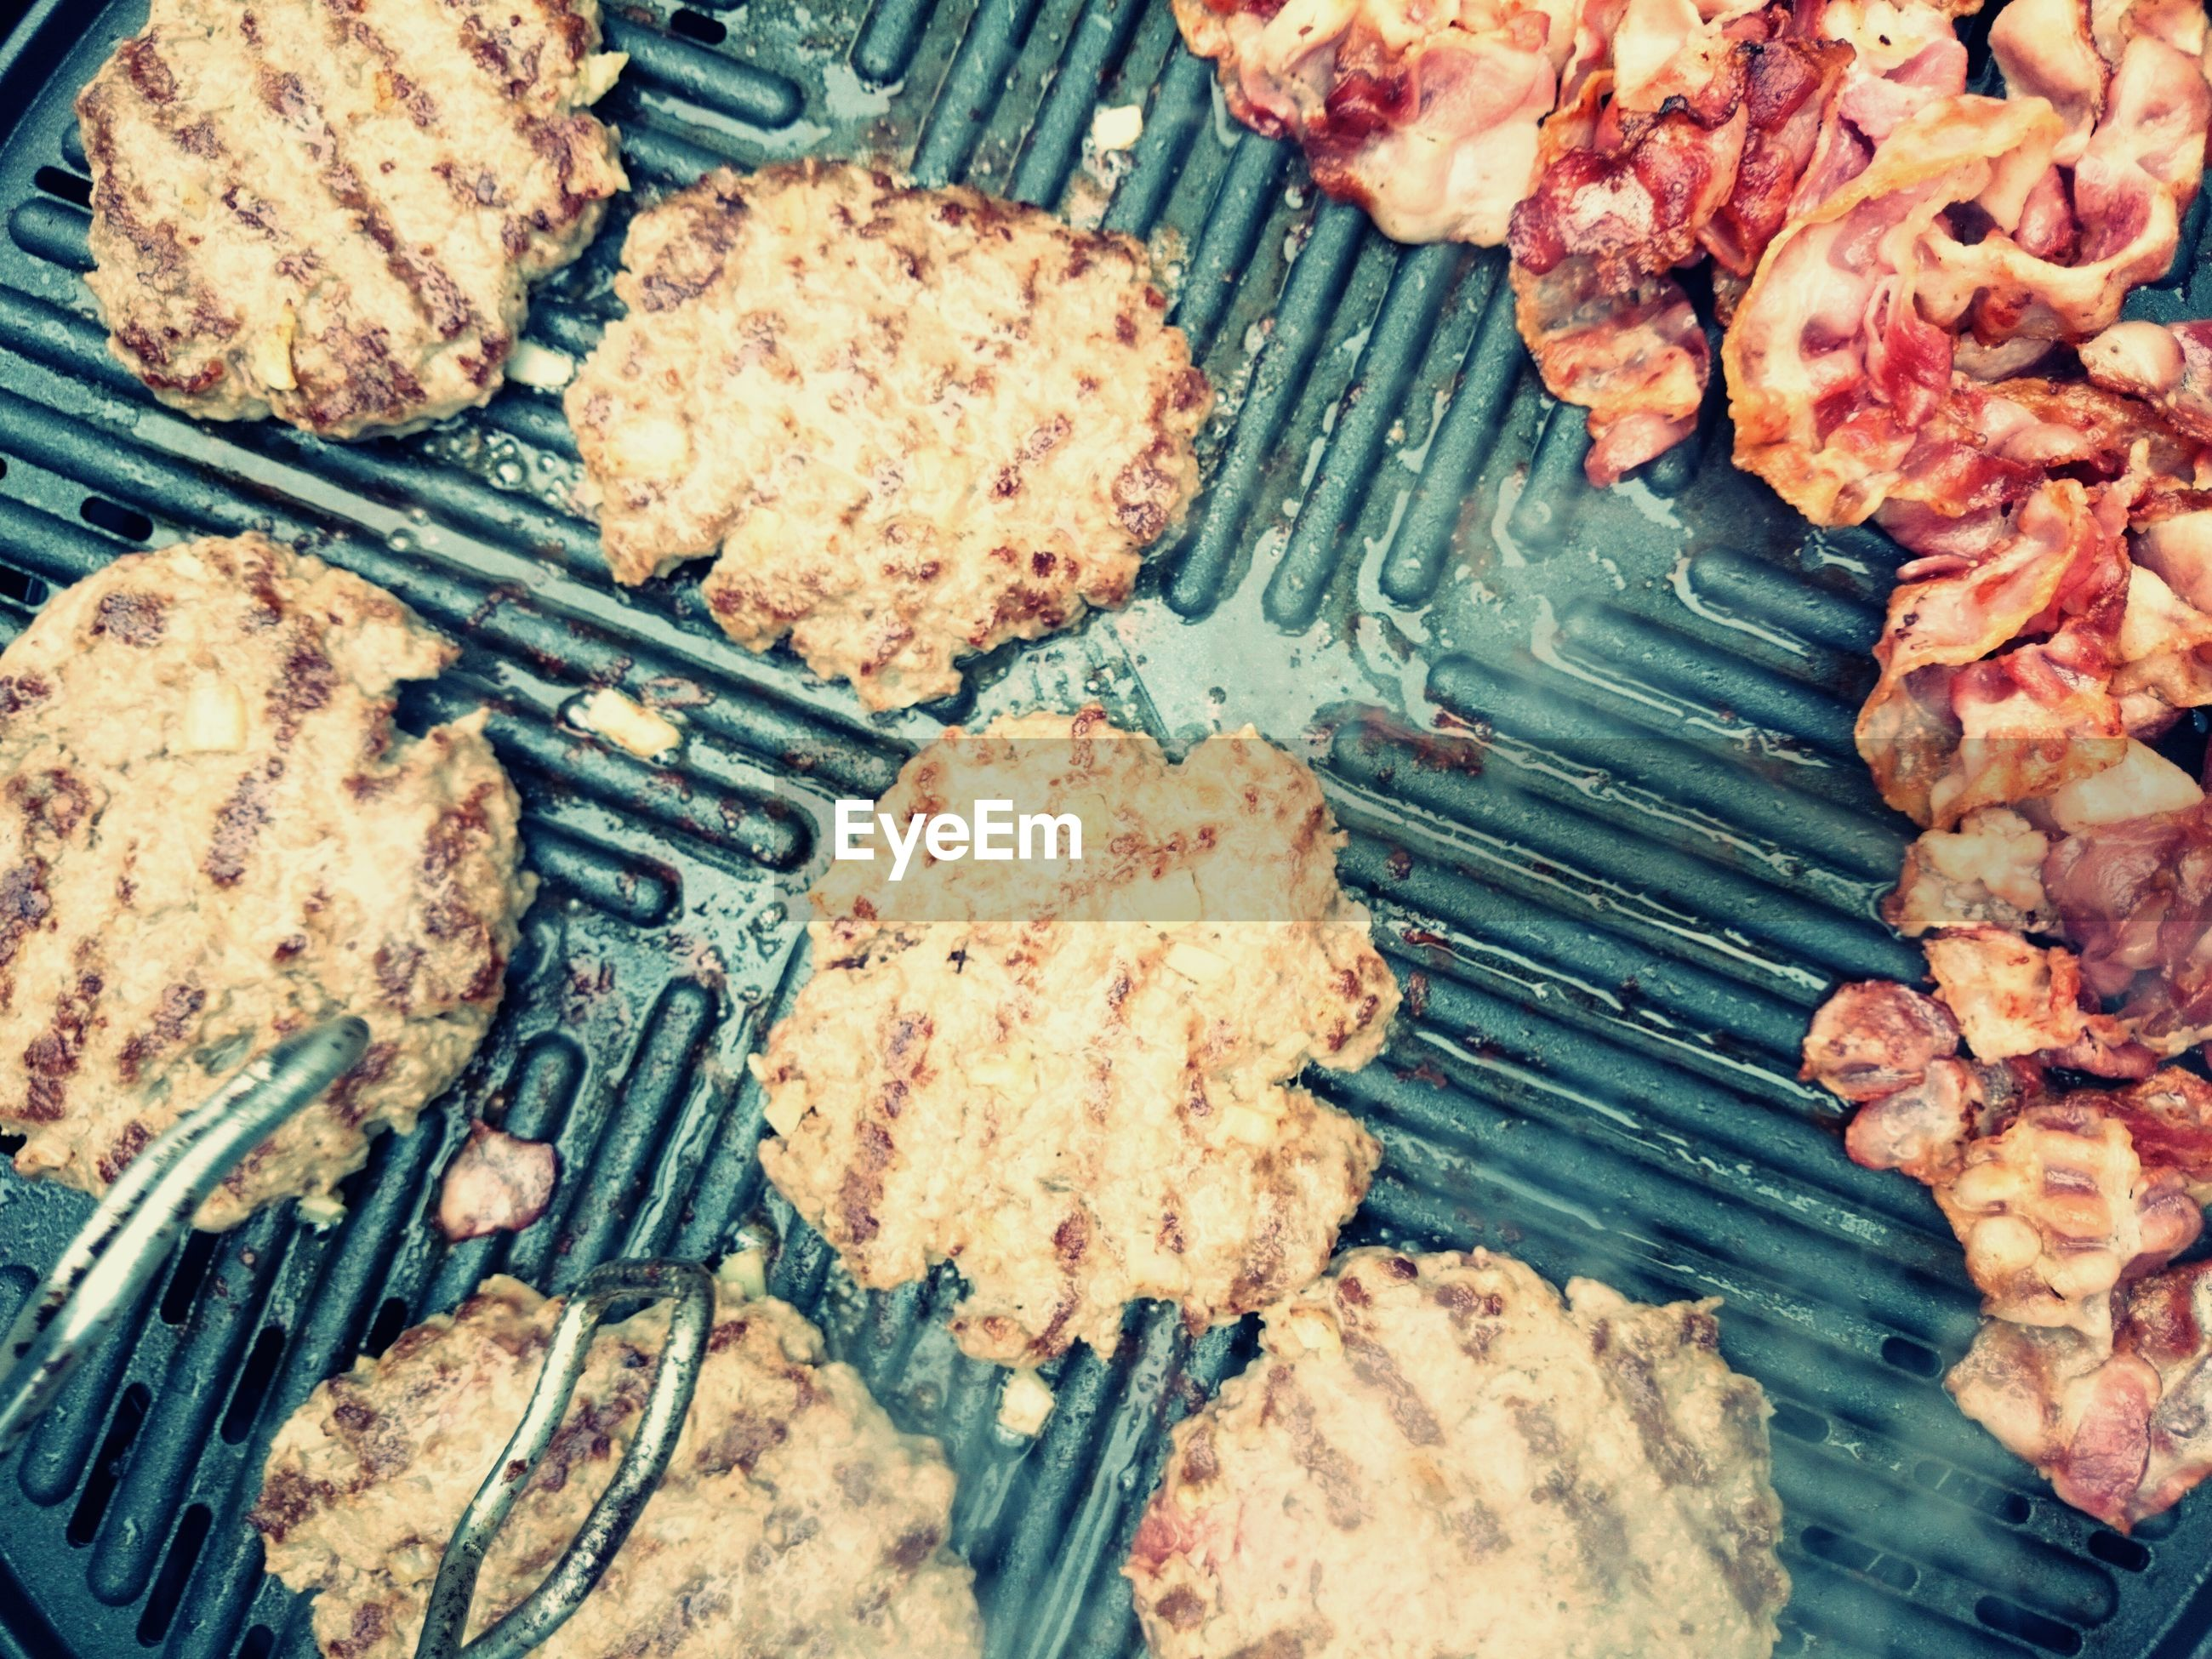 High angle view of meat being grilled on barbecue